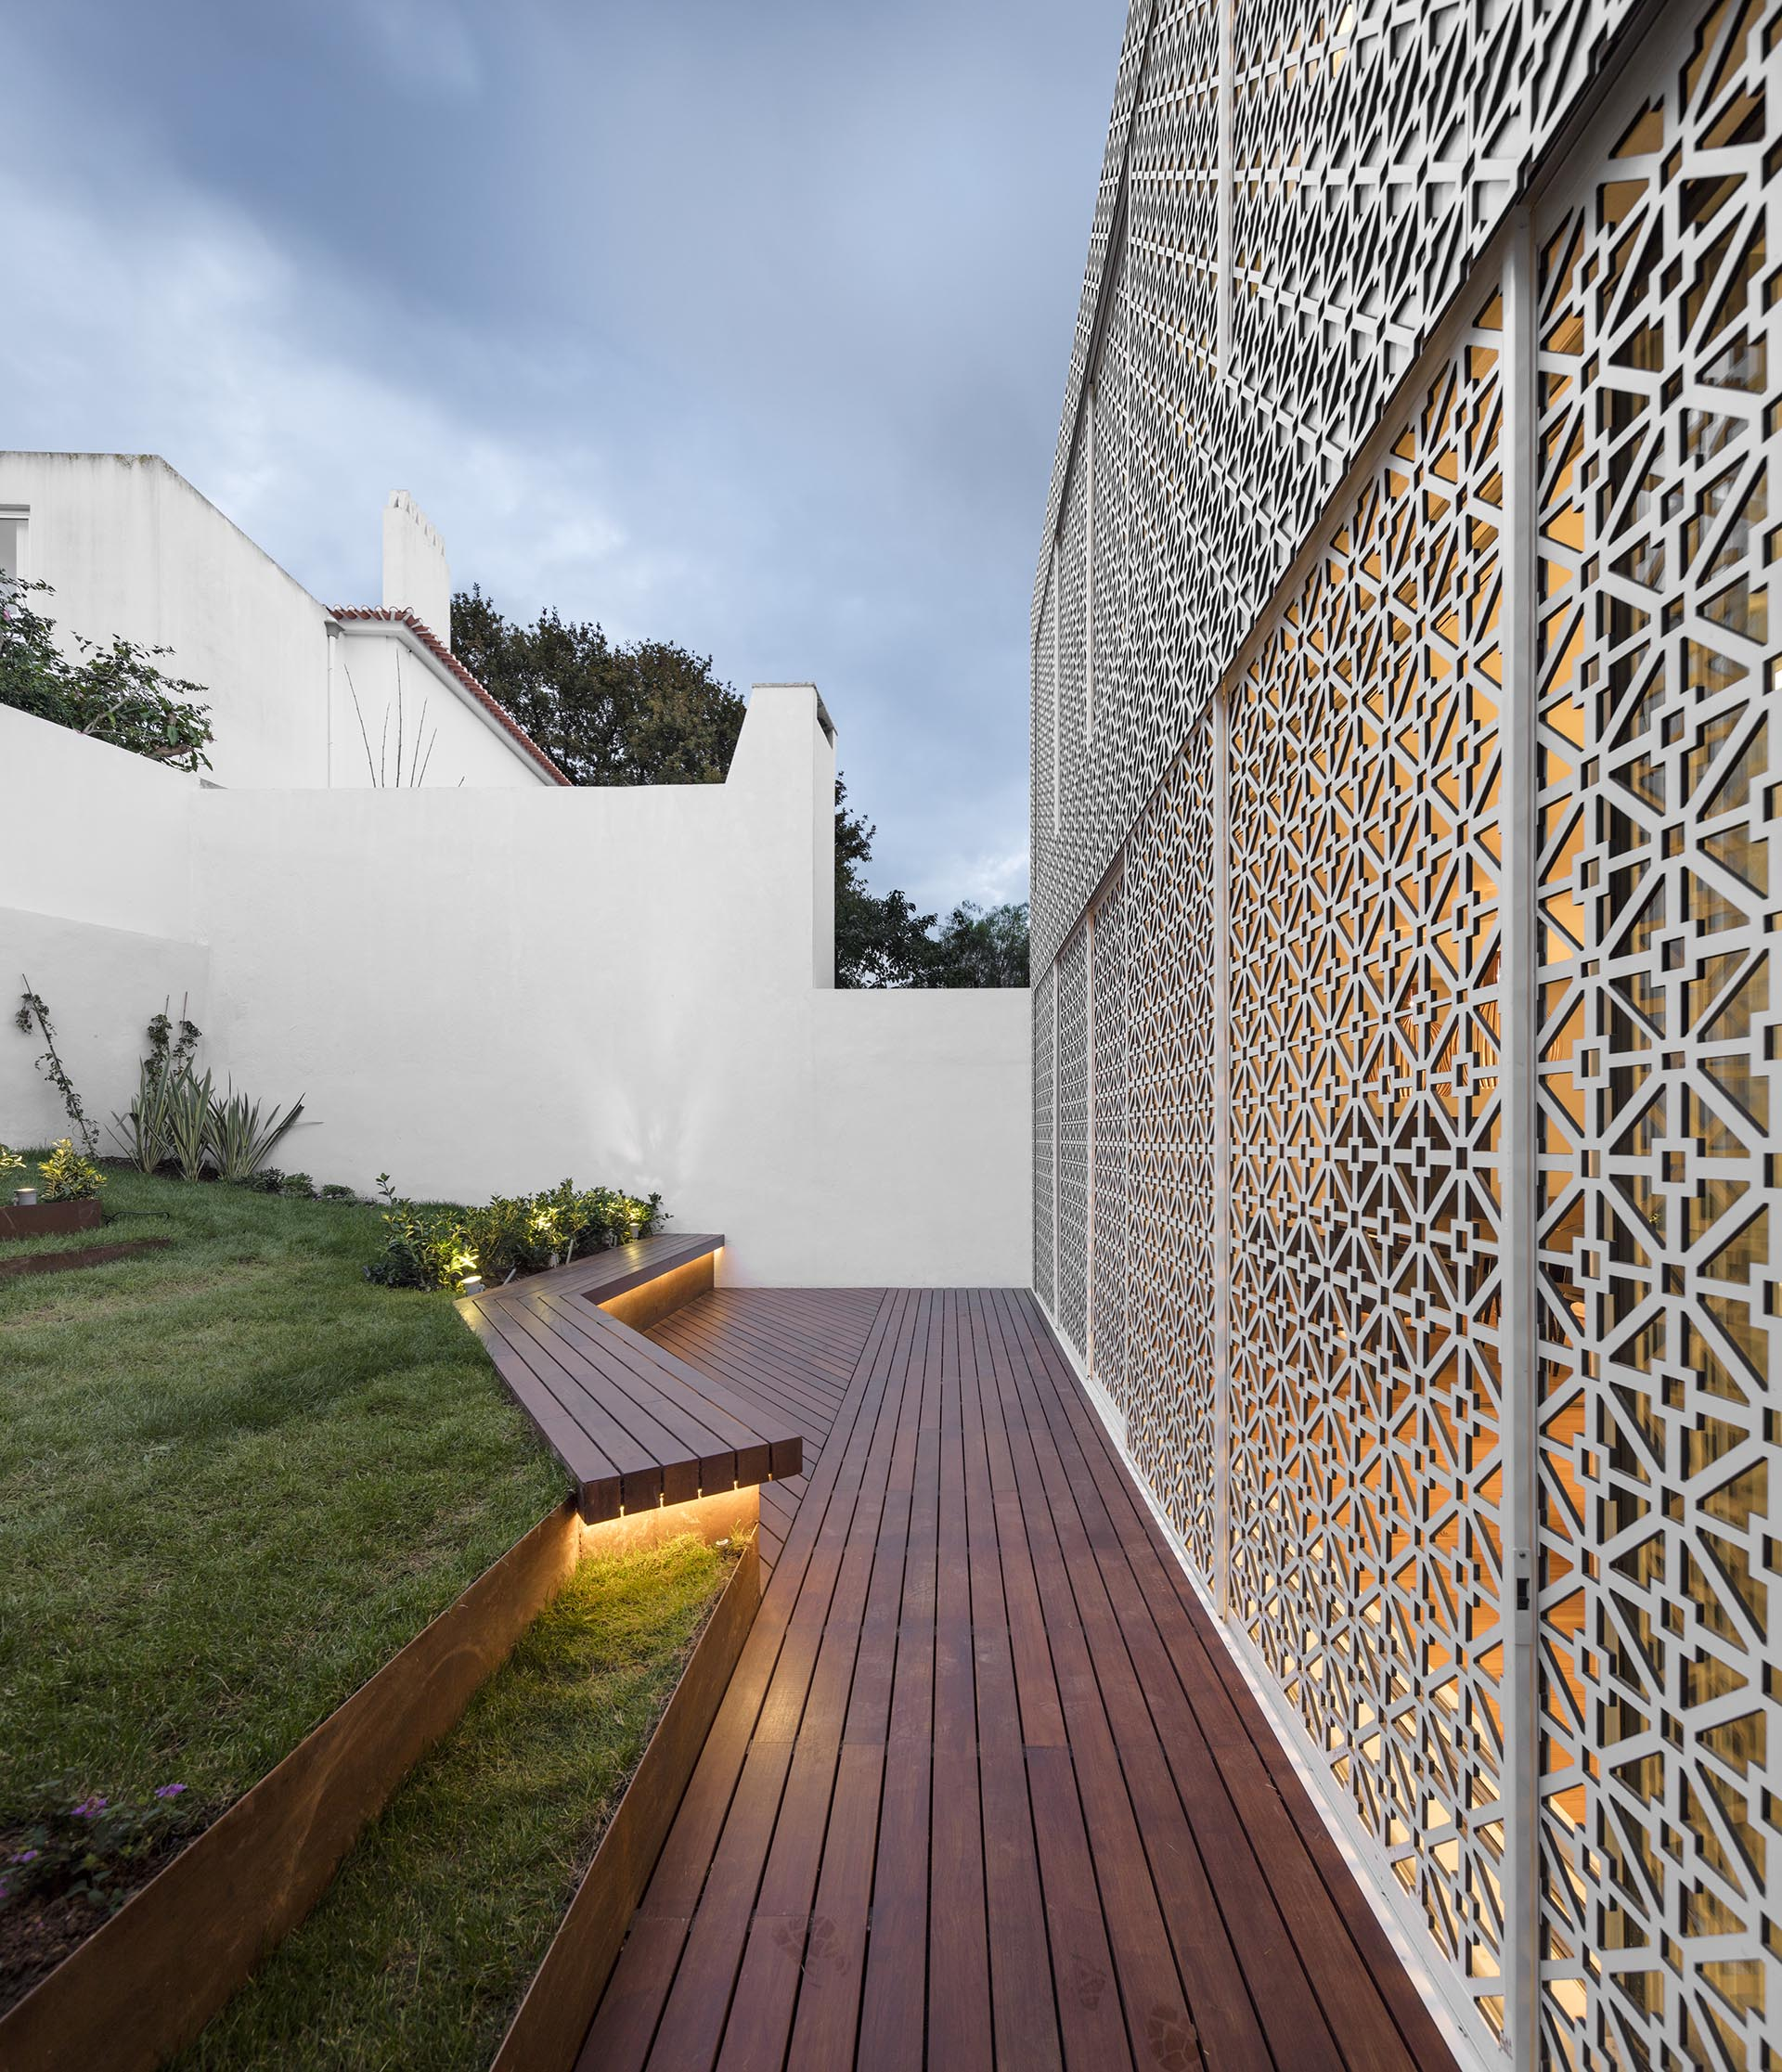 Sliding screens with a decorative pattern open this house to the backyard.